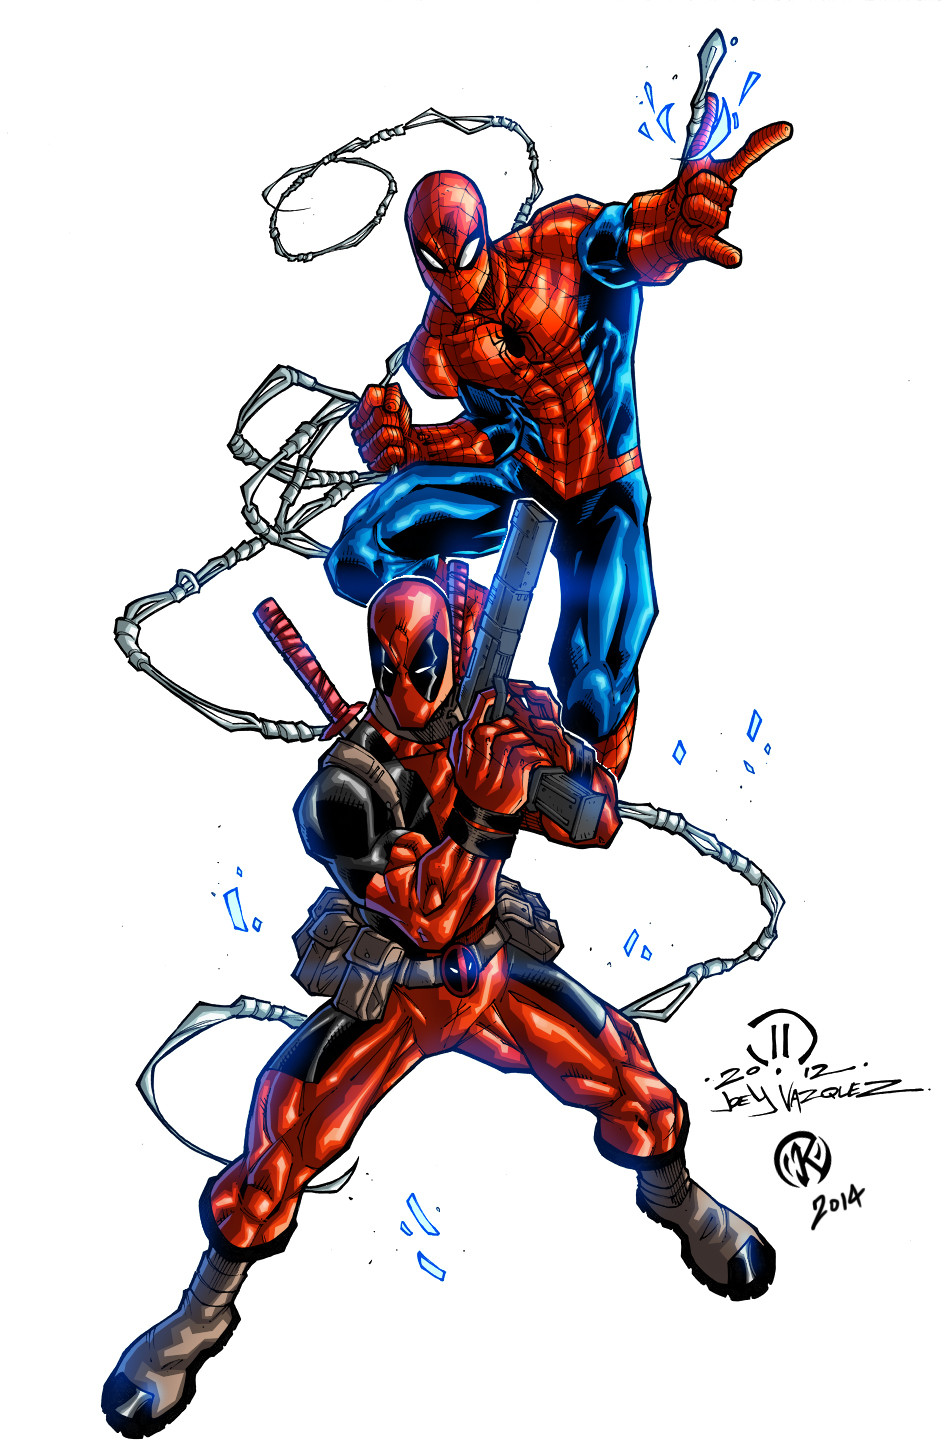 Maksim strelkov dex pool and spiderman commission joeyvazquez5